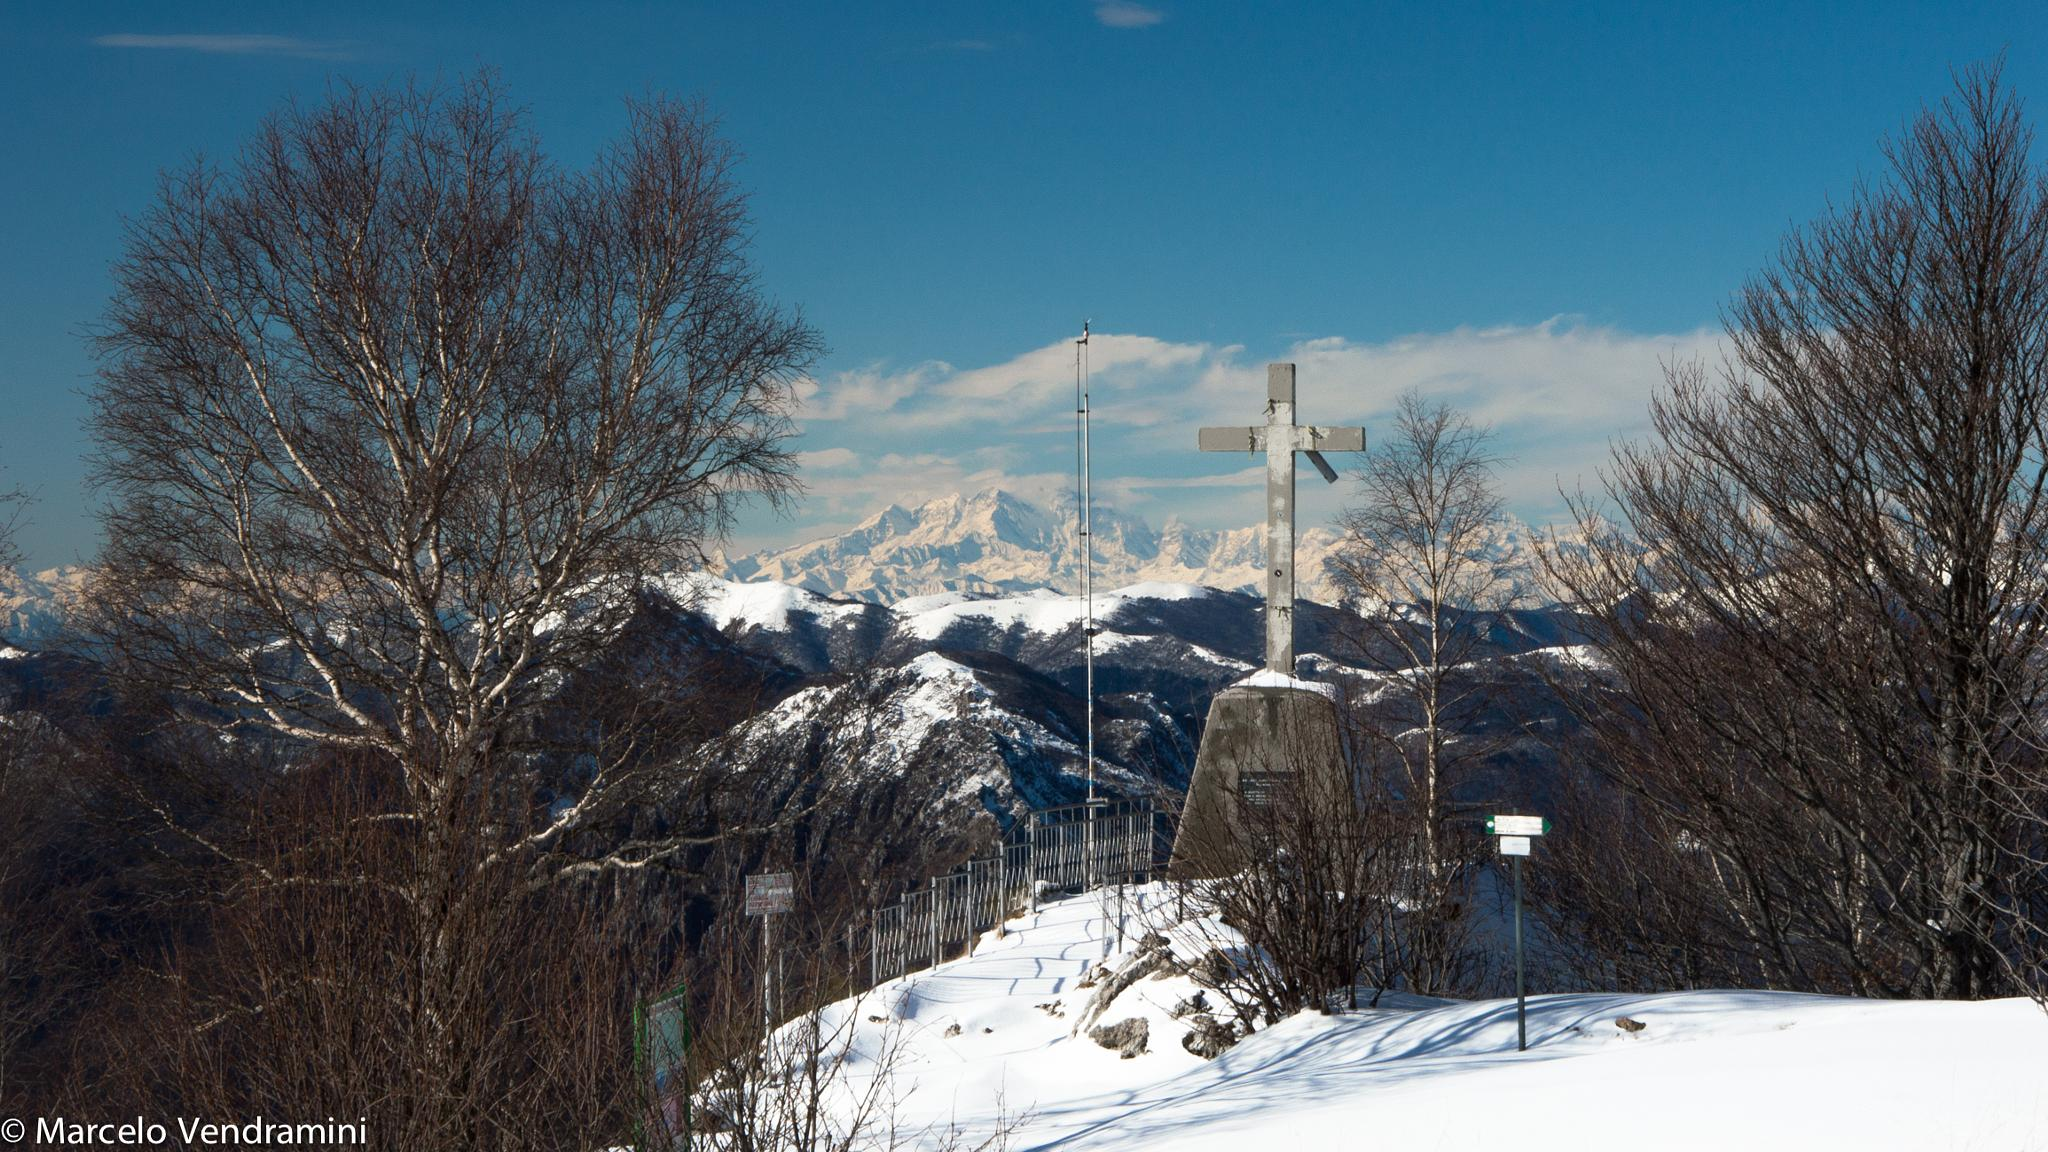 La Croce at Piani D'Erna for those arriving at the top by Marcelo Vendramini